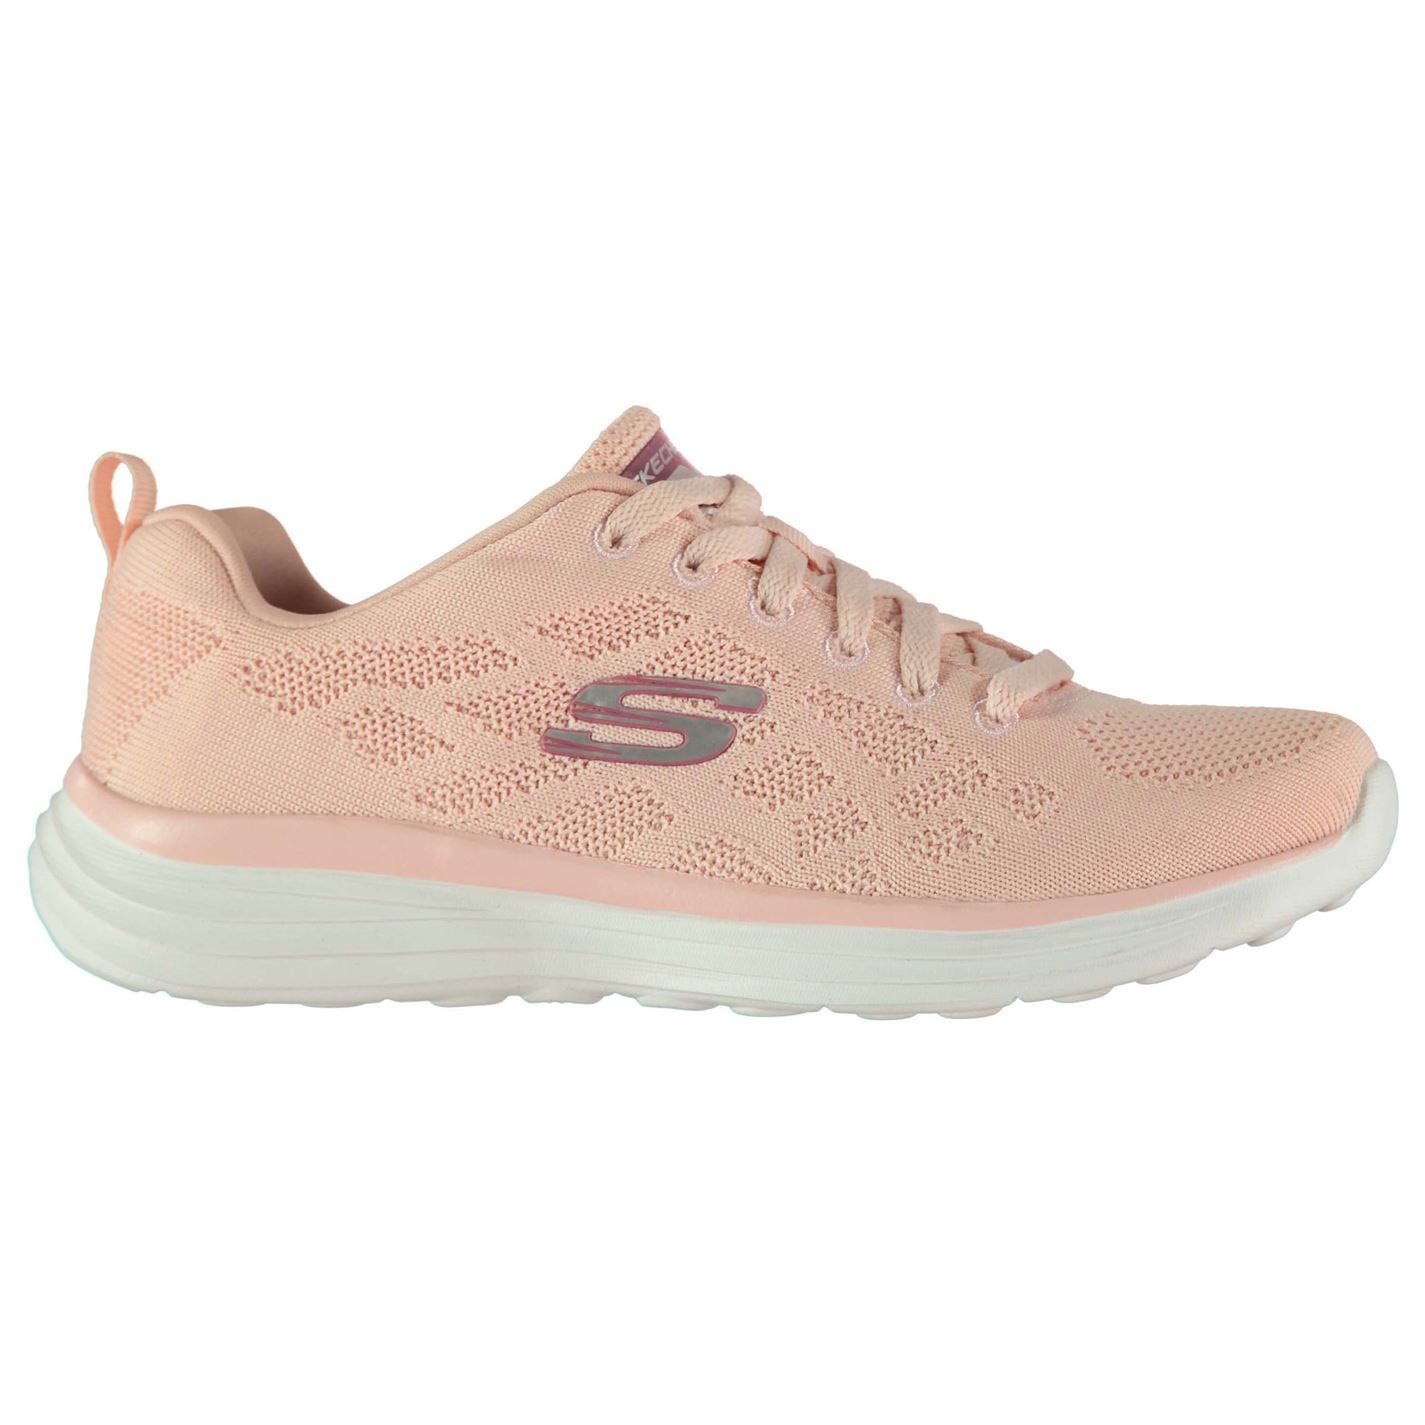 Skechers Damenschuhe Up ST Knitted Trainers Lades Runners Lace Up Damenschuhe Padded Ankle Collar dec690